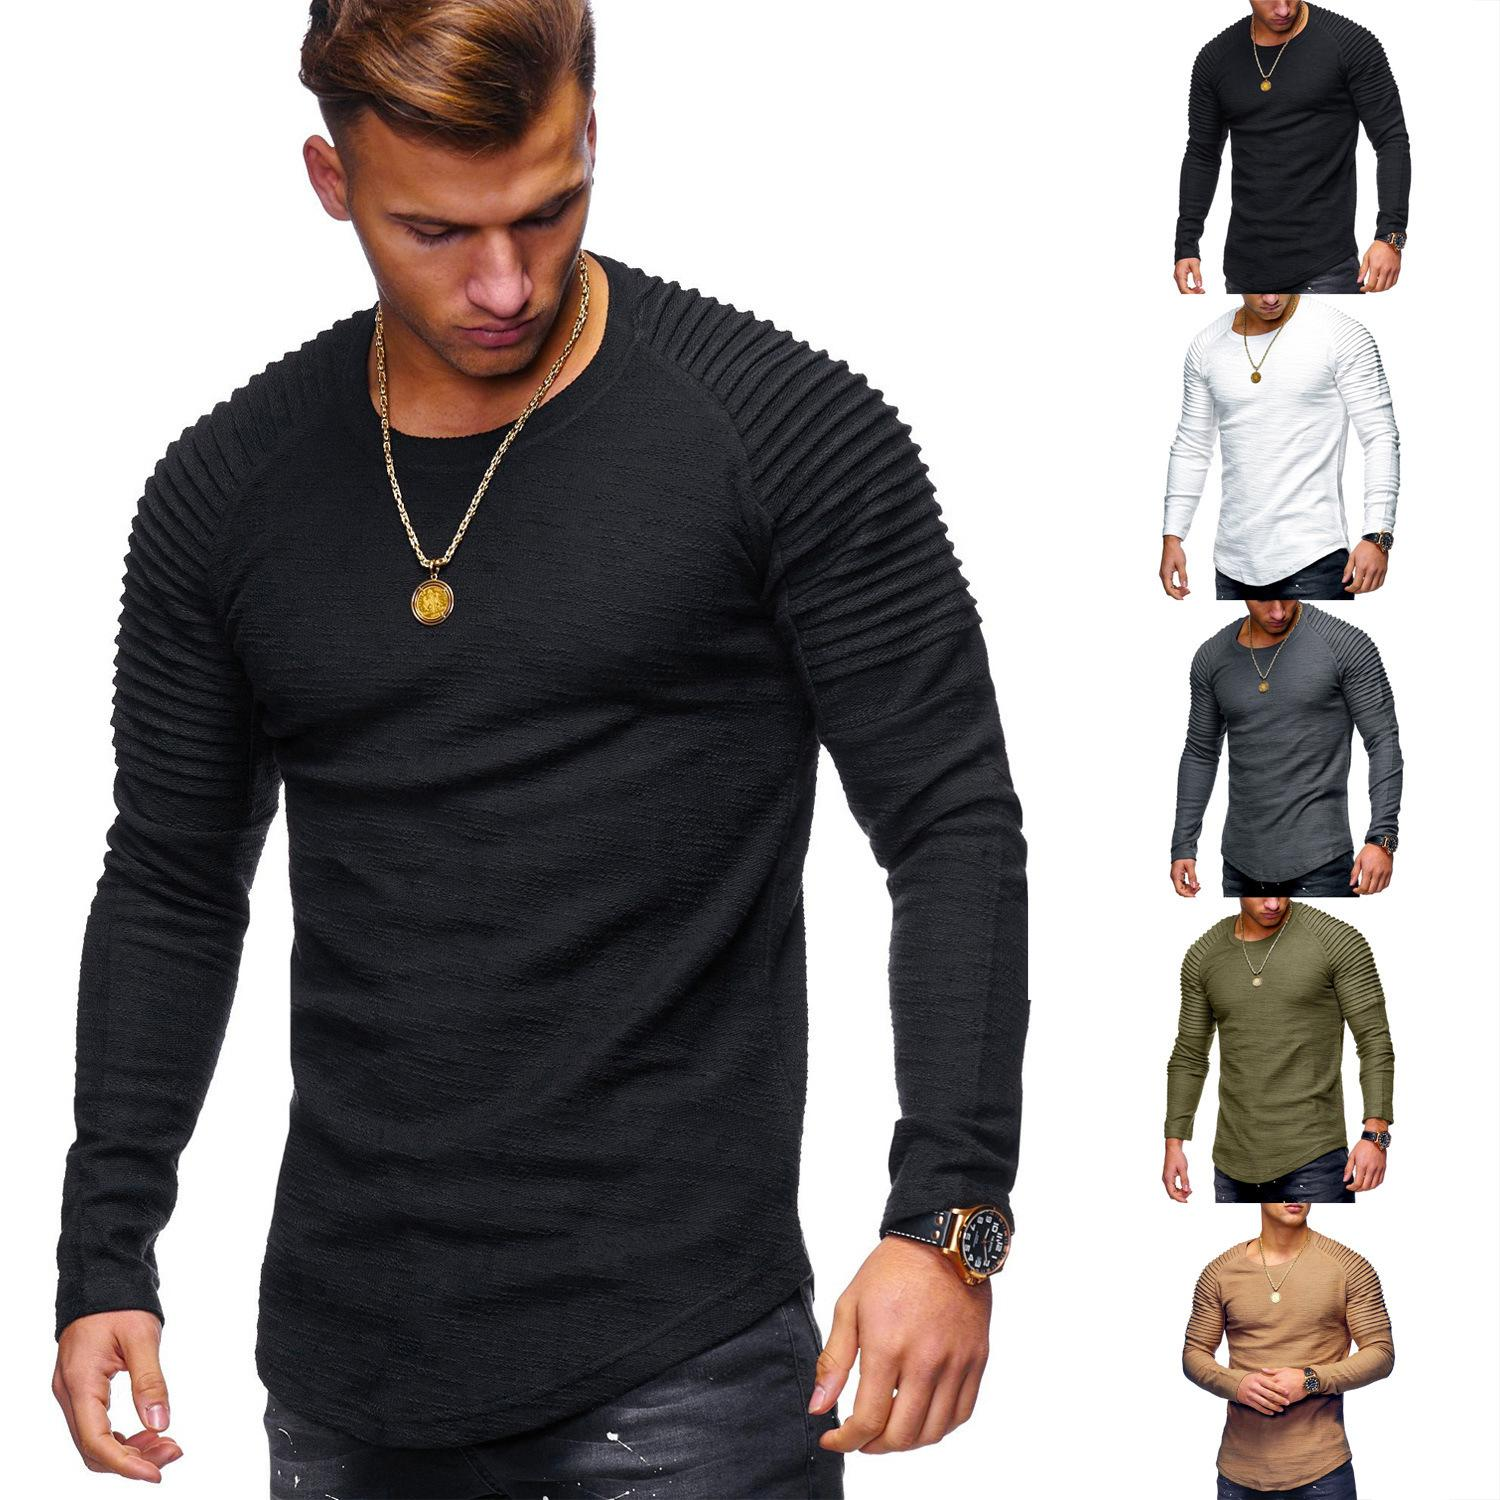 9291760b9297 Men's Tops 2019 New Arrival Fashion T-Shirt Autumn Winter Long Sleeve Casual  Pleated Solid Color Long Sleeve T-Shirts Size S-2XL